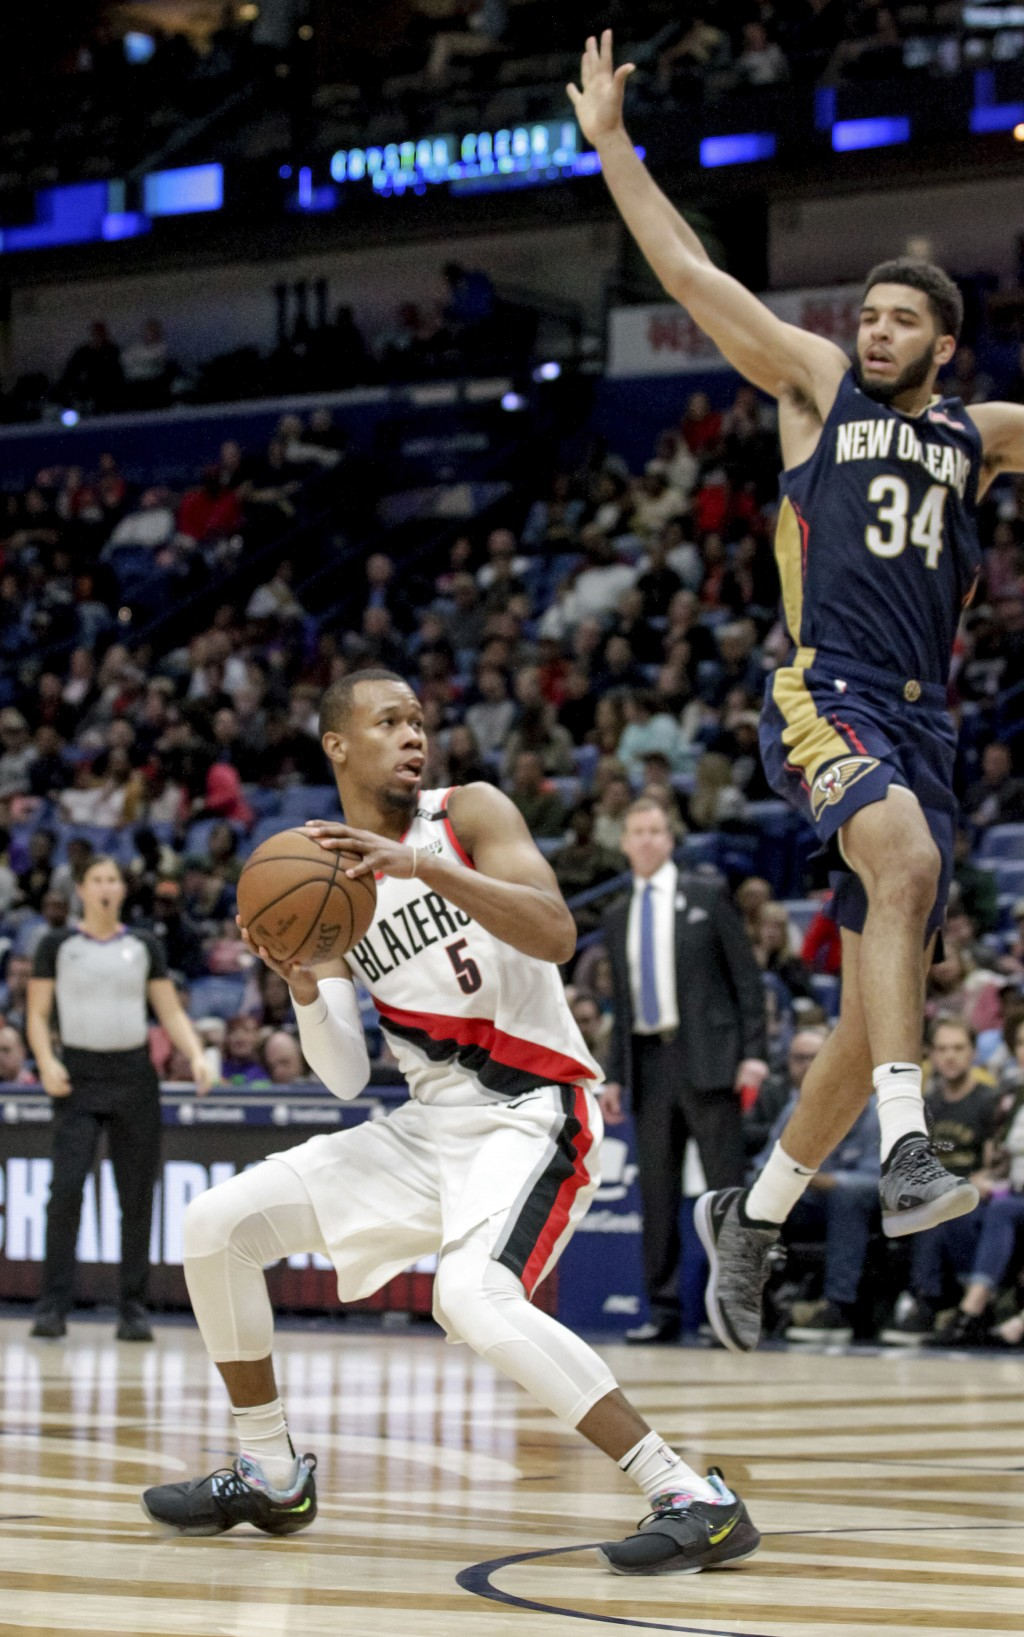 Portland Trail Blazers guard Rodney Hood (5) fakes New Orleans Pelicans guard Kenrich Williams (34) off his feet before scoring against him in the sec